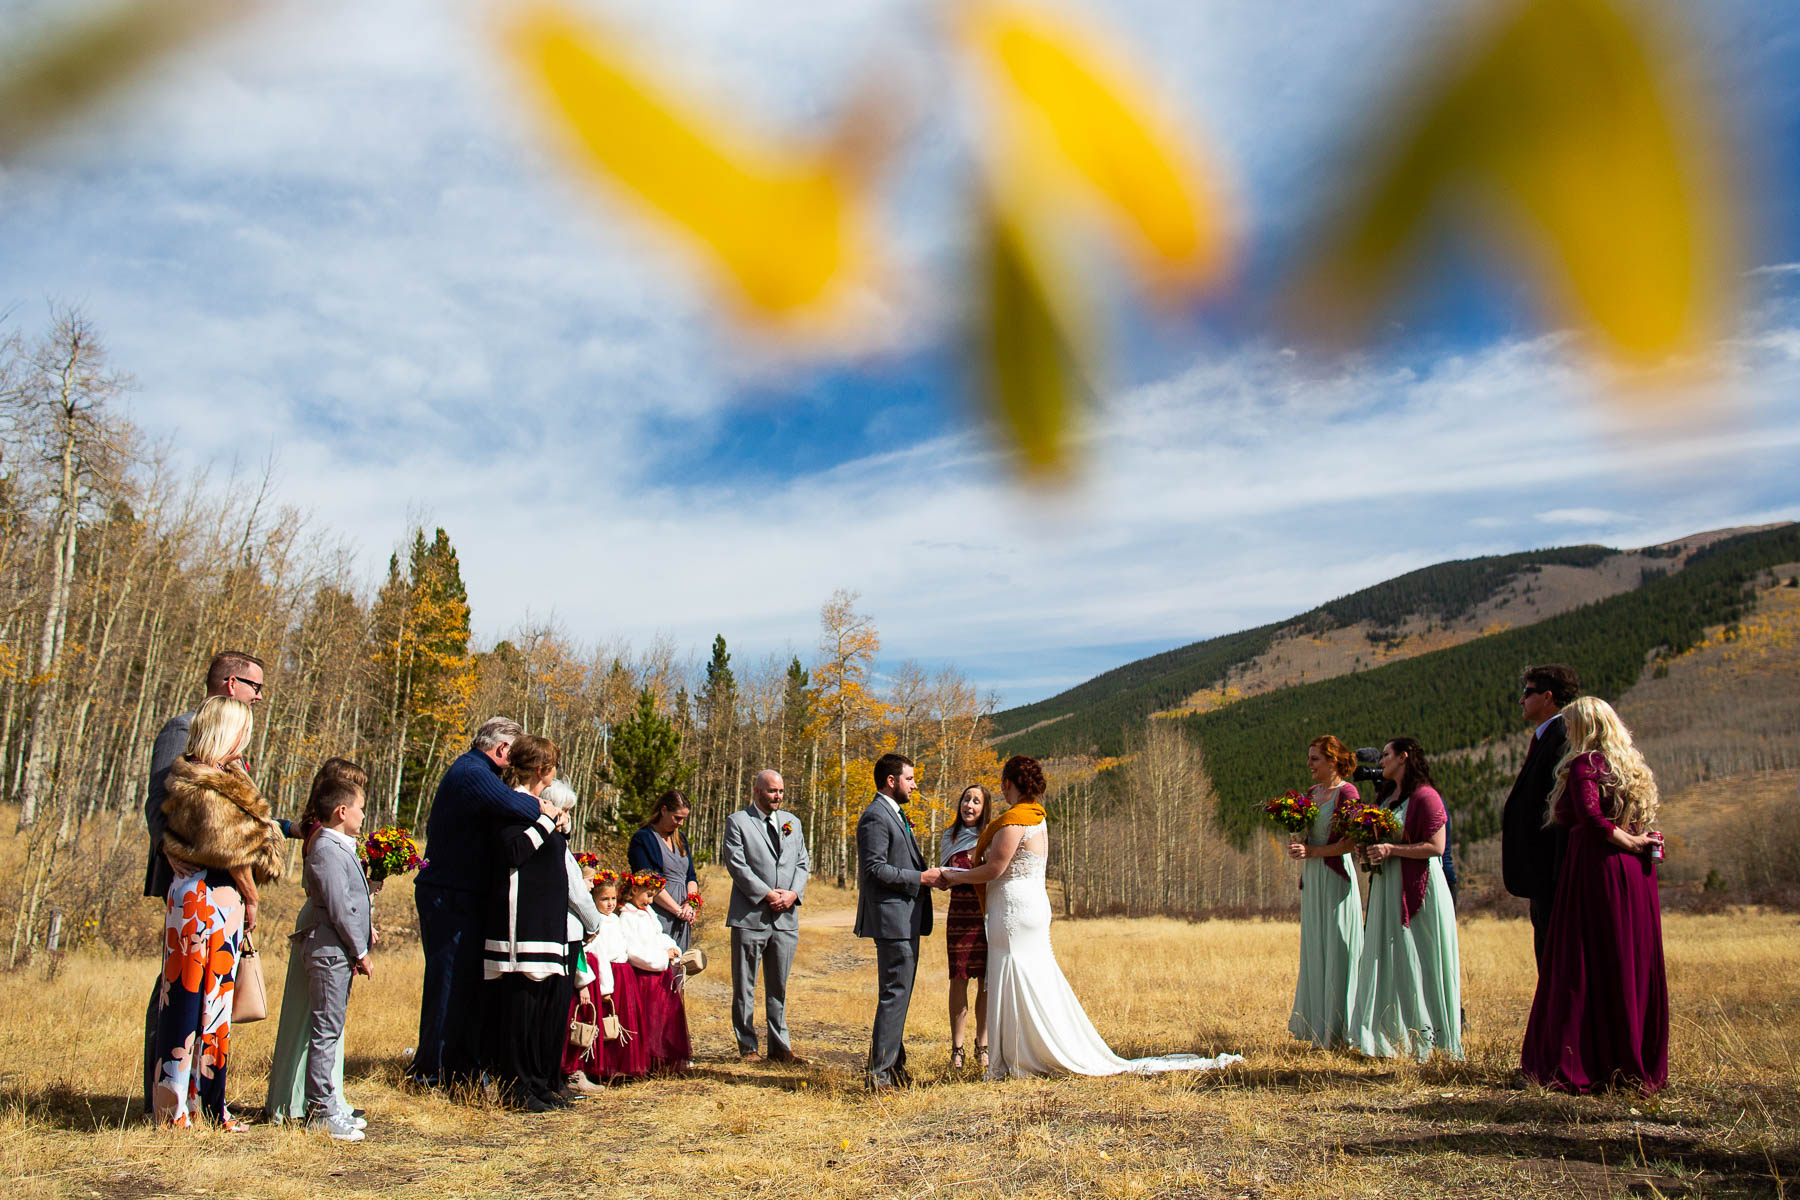 Colorado Wedding, Elopement Photography | Gold aspen leaves frame the meadow where they gathered